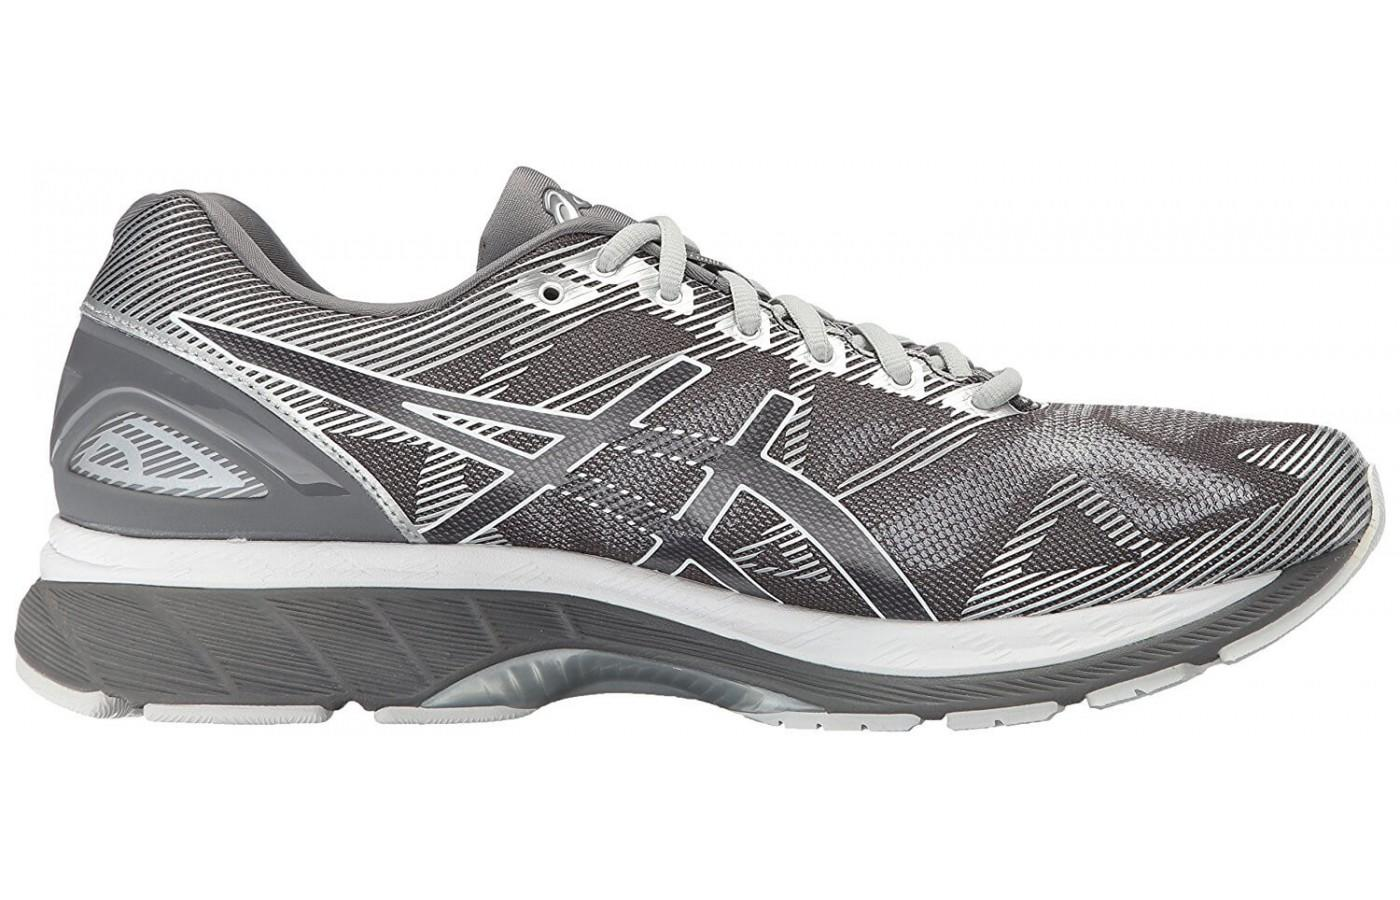 The seamless construction of the ASICS Gel Nimbus 19 upper reduces foot irritation.